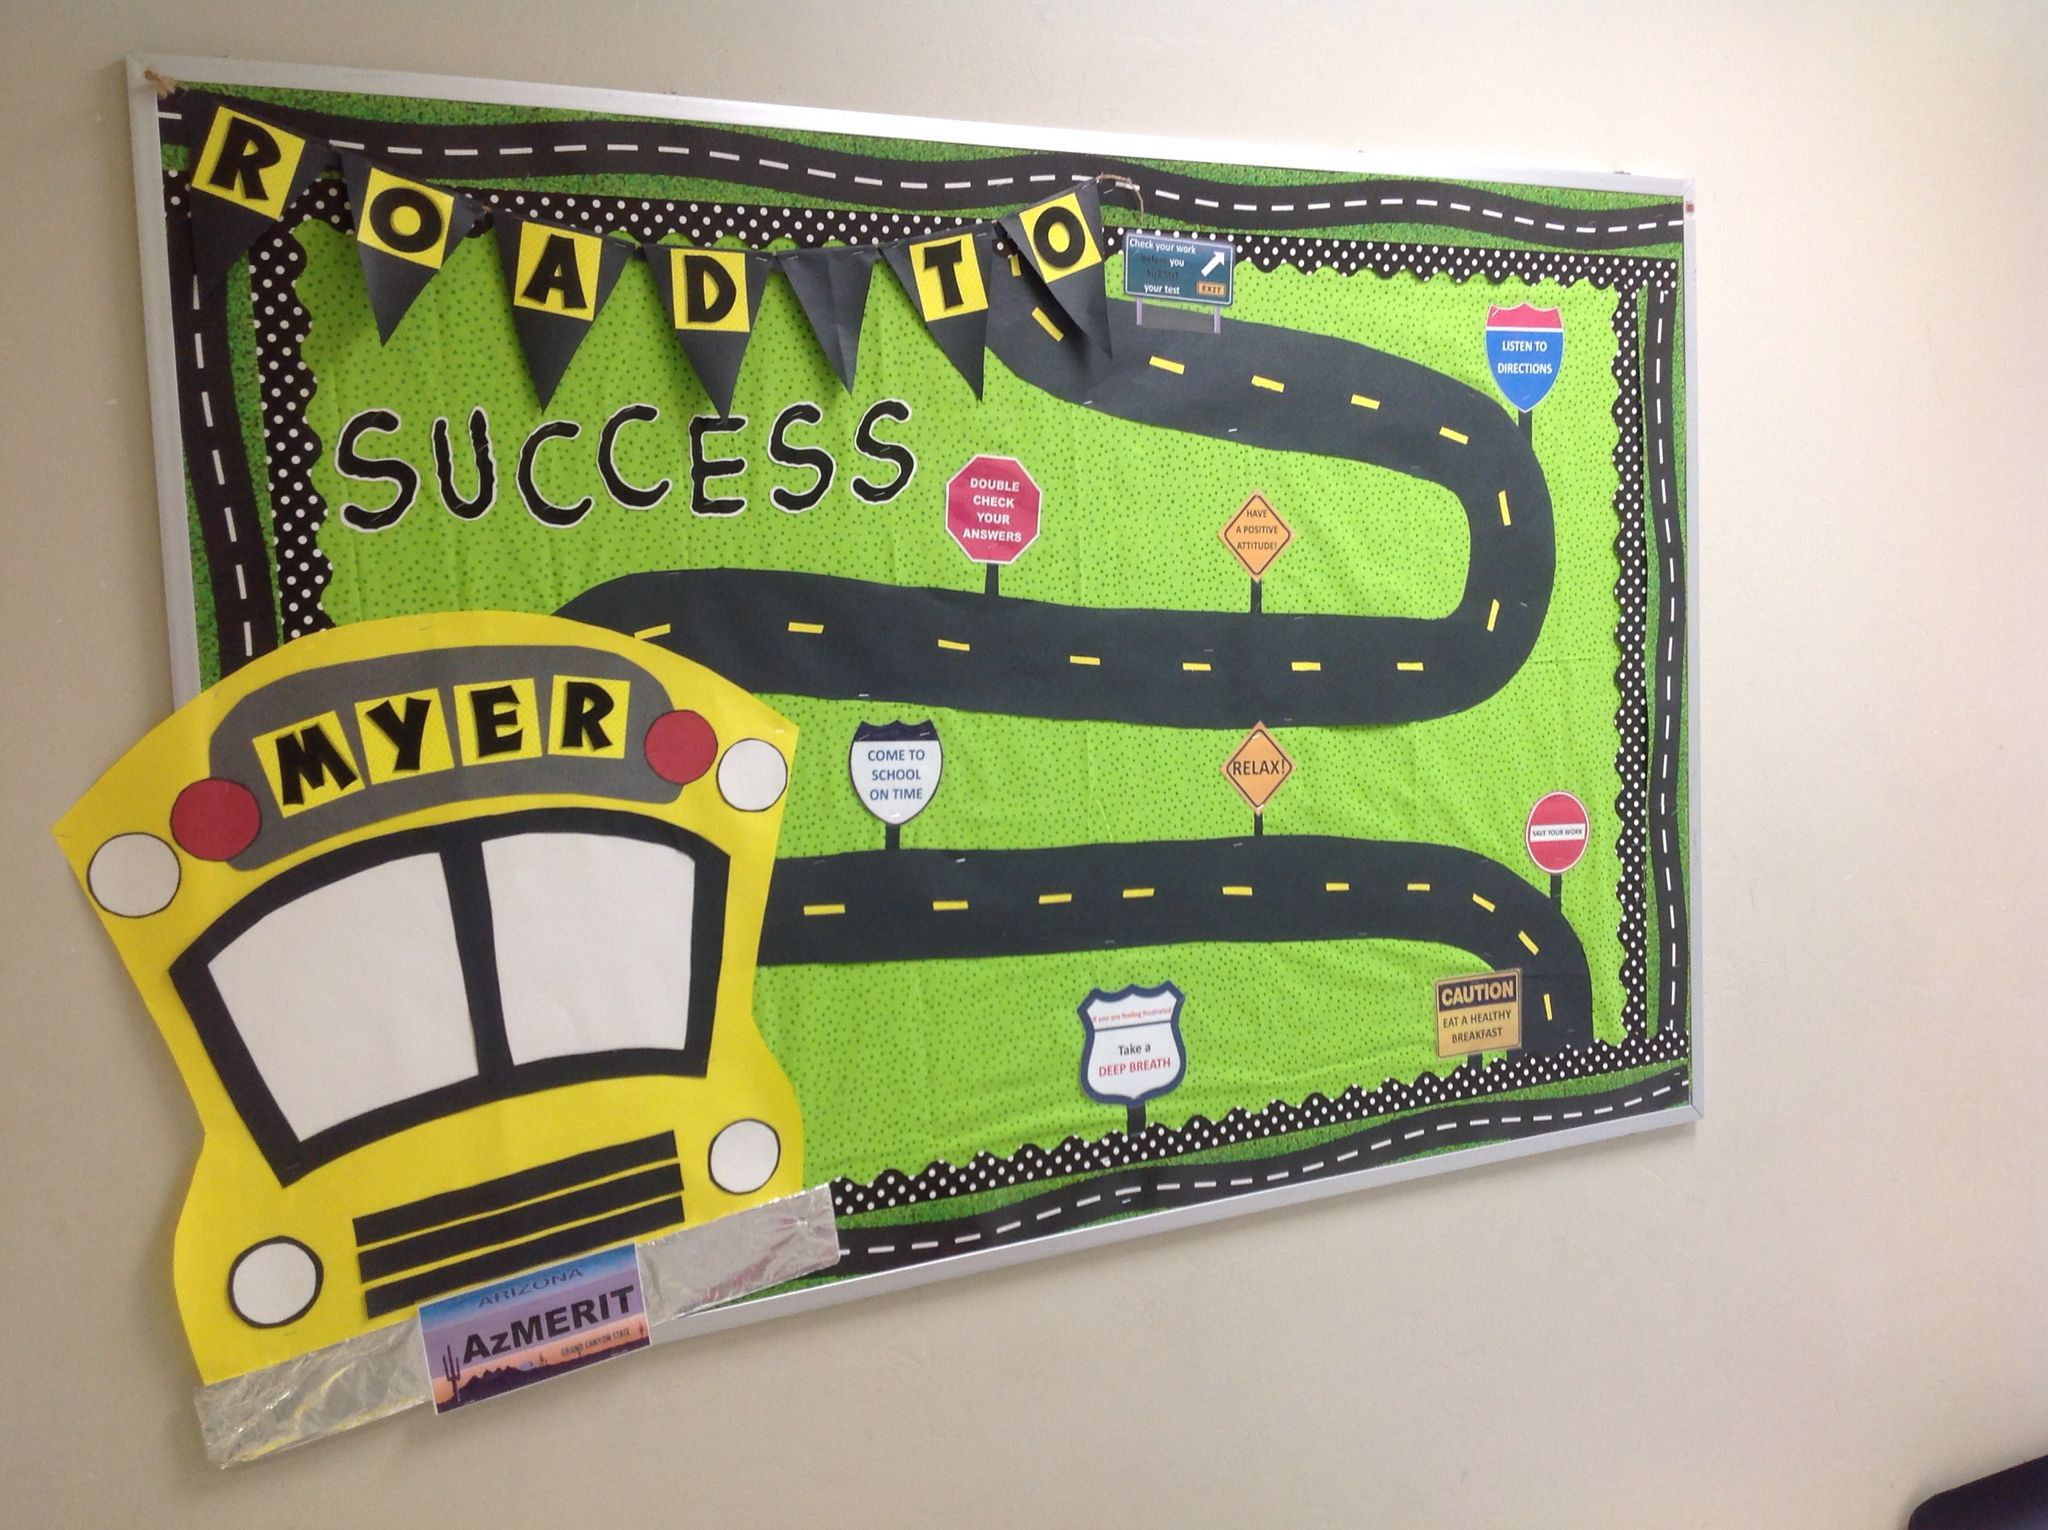 Bulletin board for state achievement test  created  license plate with the name on it azmerit road signs have taking strategies also co